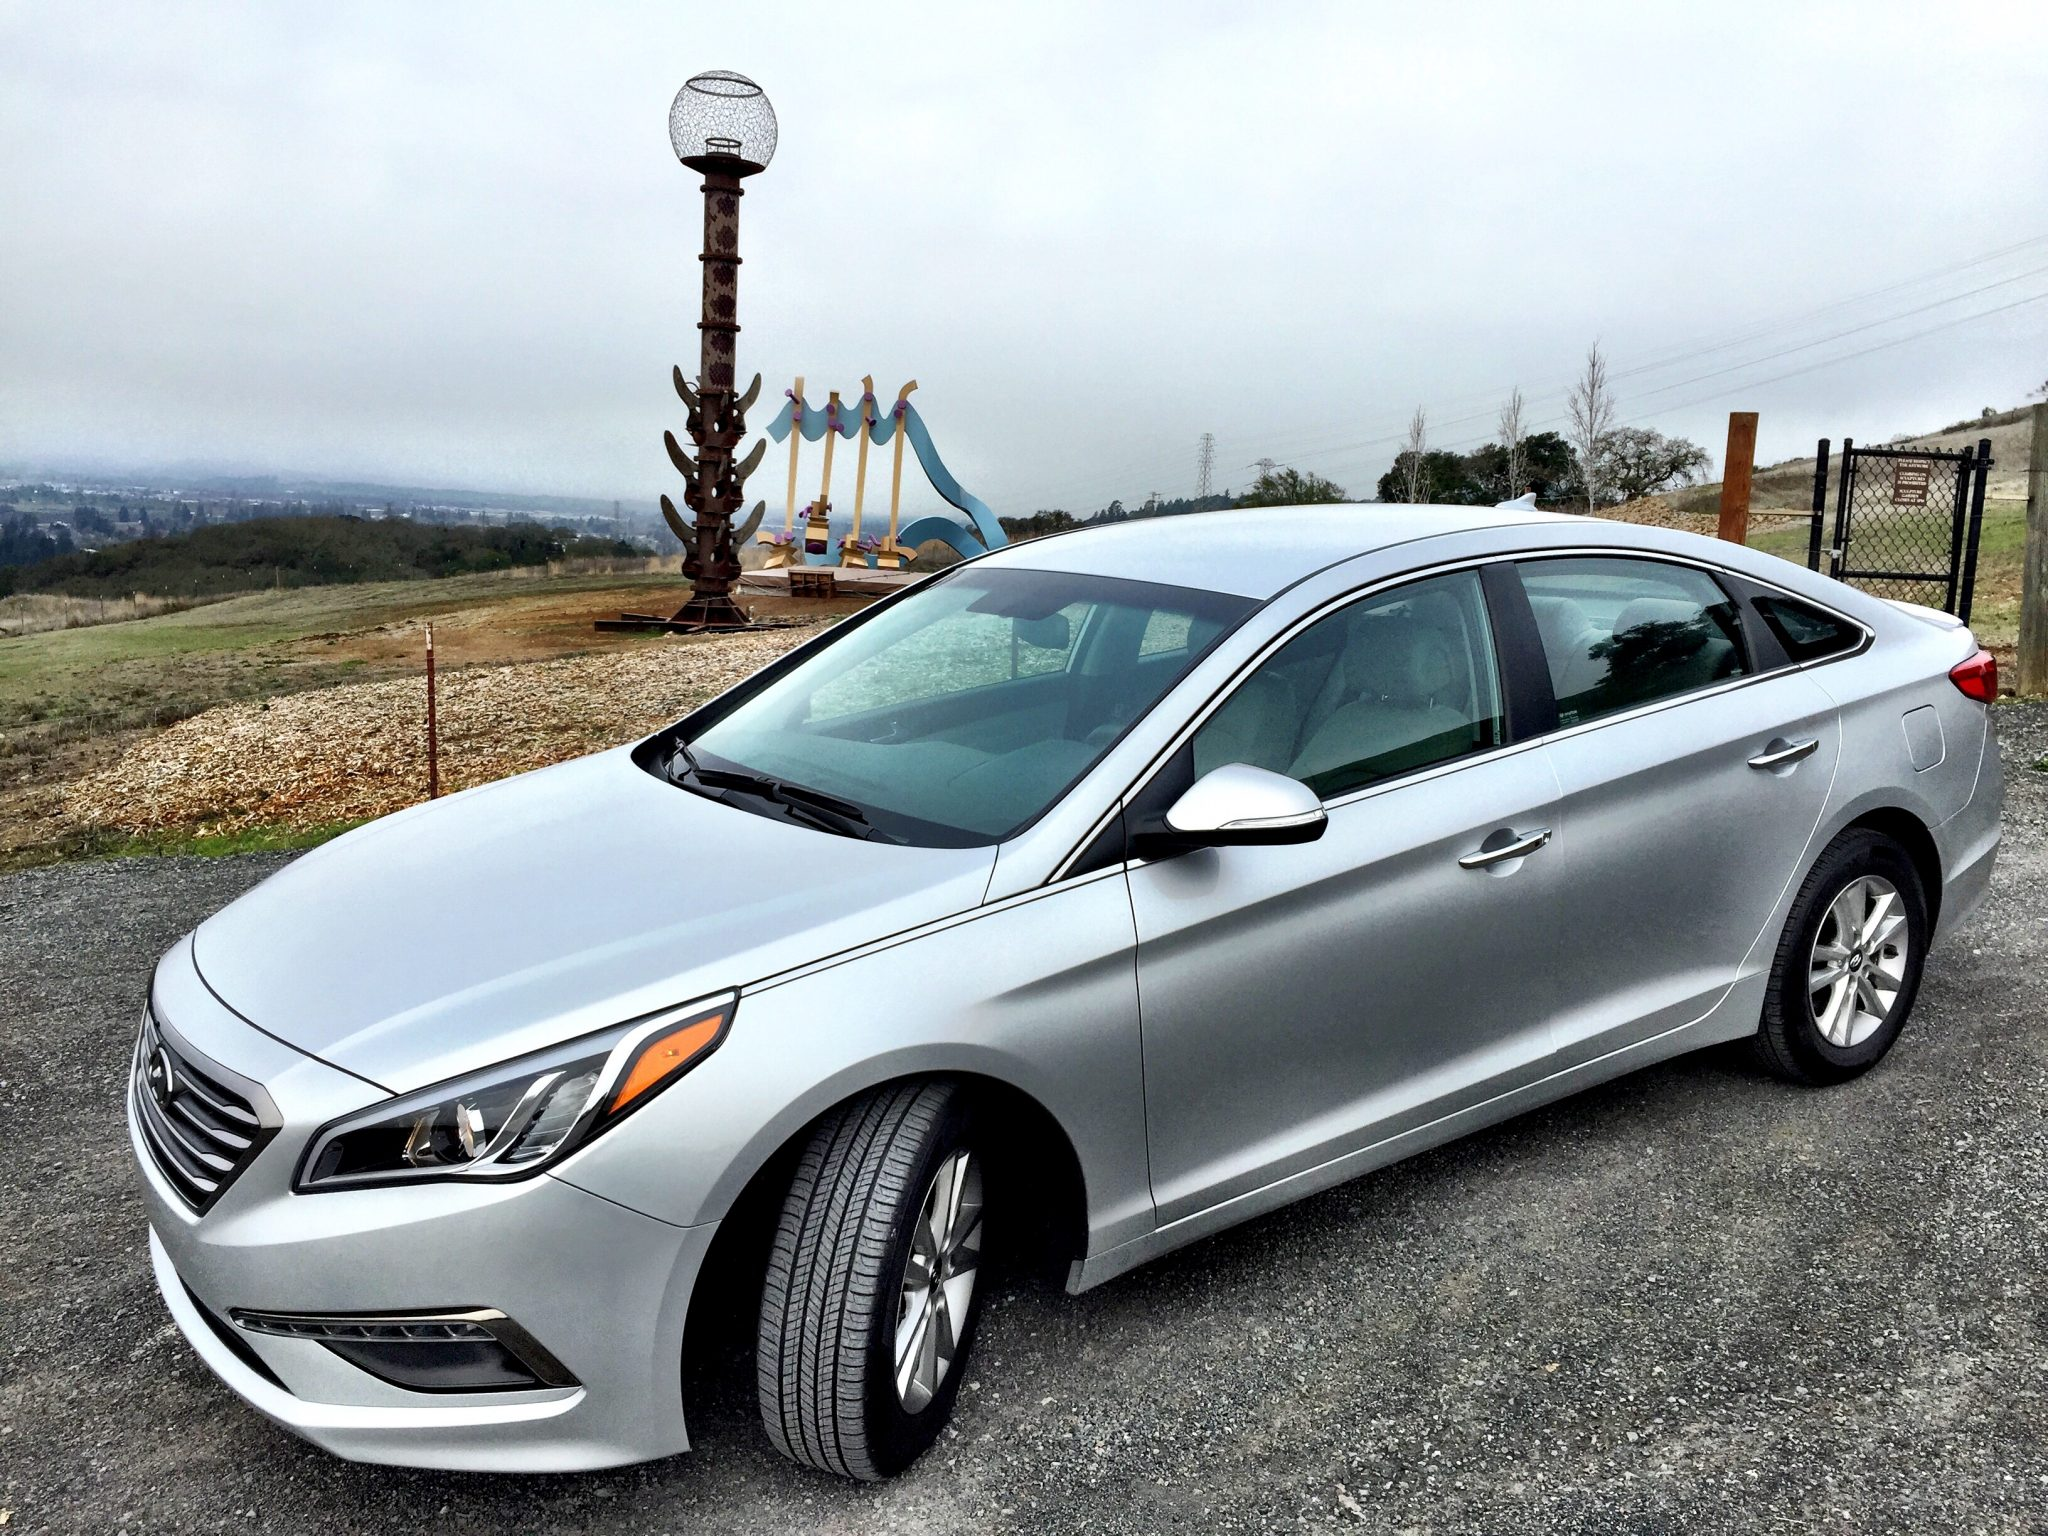 The Hyundai Sonata Eco Our Review Of Sporty Family Friendly 2 4 Engine Diagram Has A 185 Hp 24l Gdi Cylinder Or 245 20l Twin Scroll Turbo 178 16lgdi Which